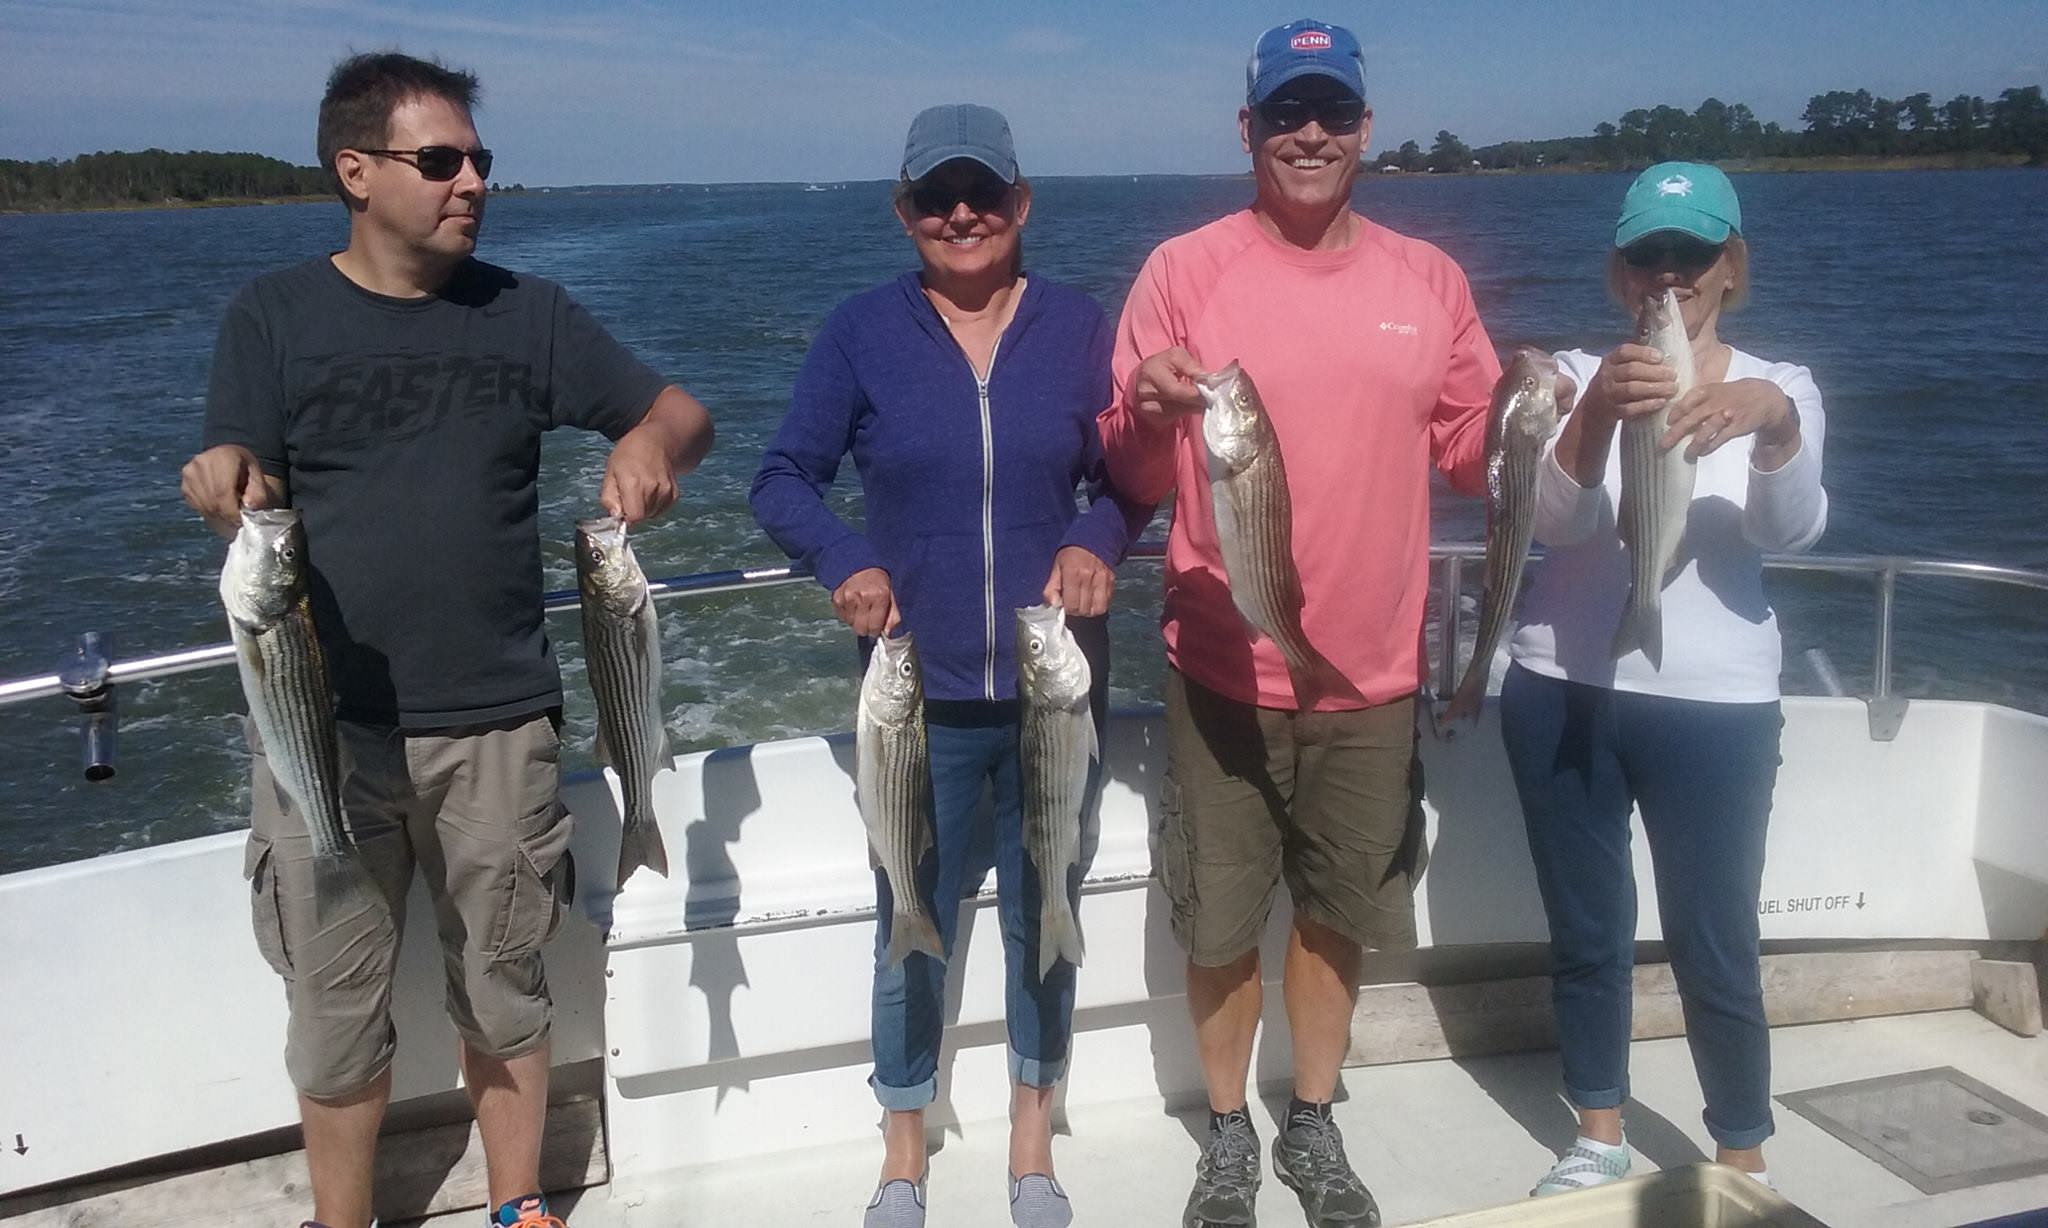 Another Fine Day Of Chesapeake Bay Fishing Aboard The Sawyer!